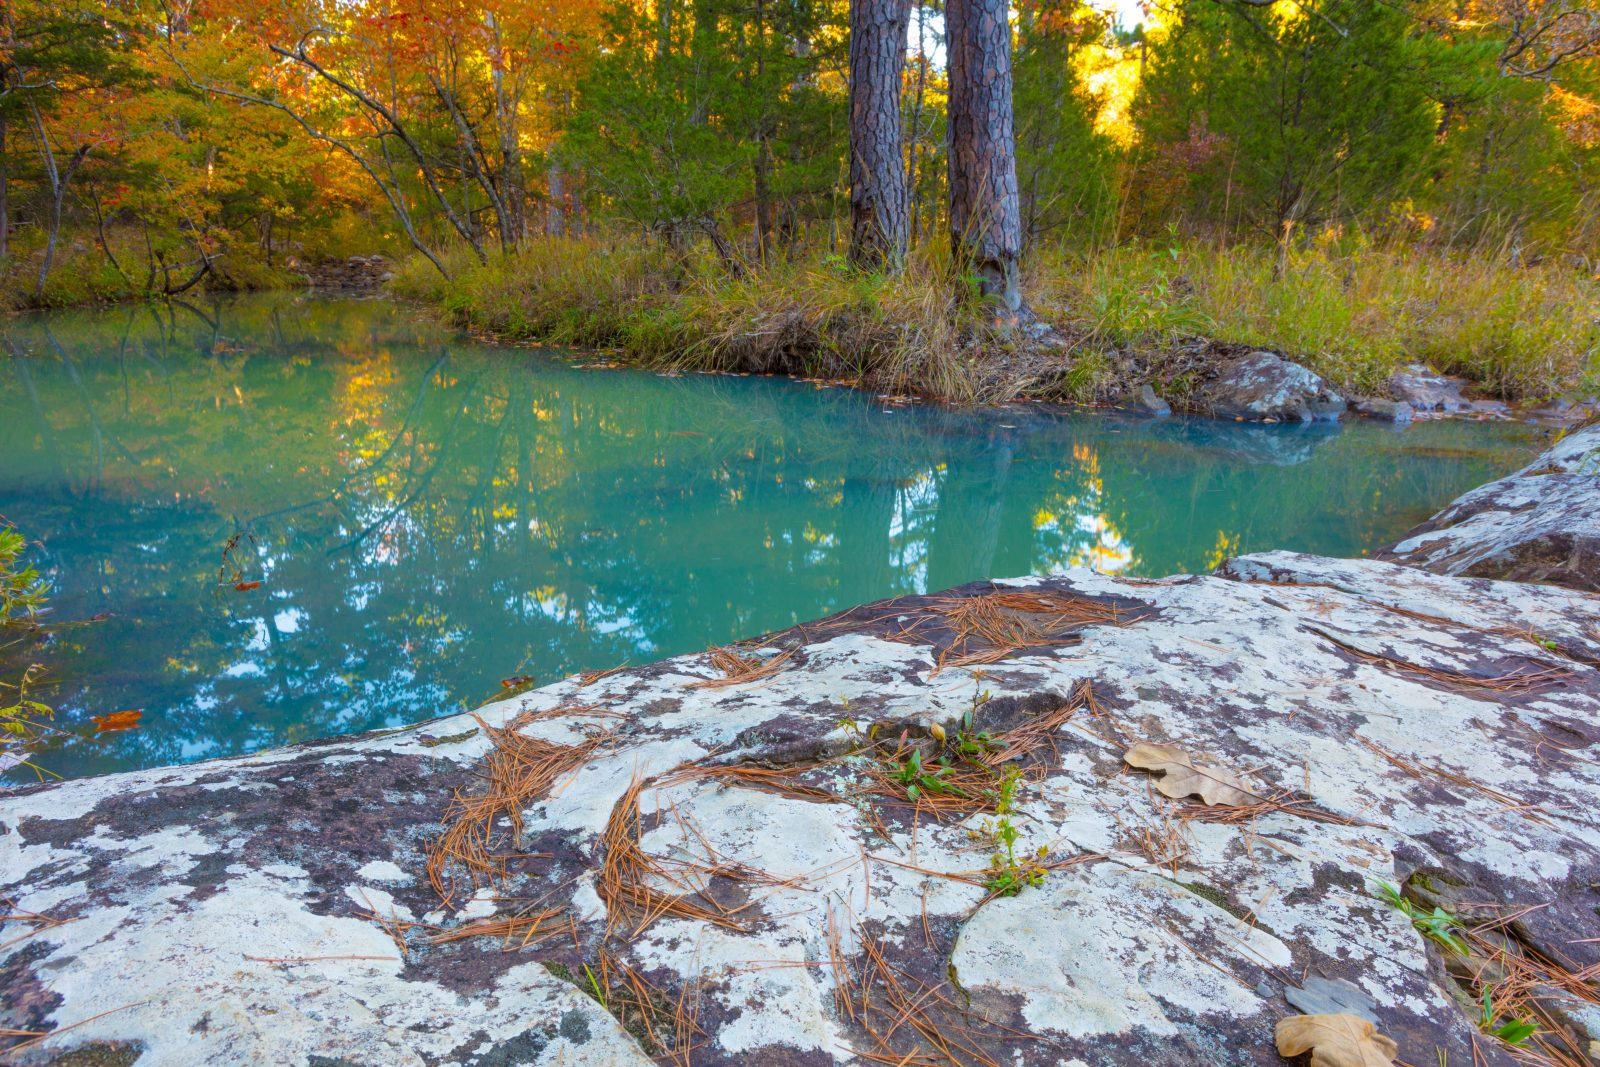 Blue Waters of Coon Creek